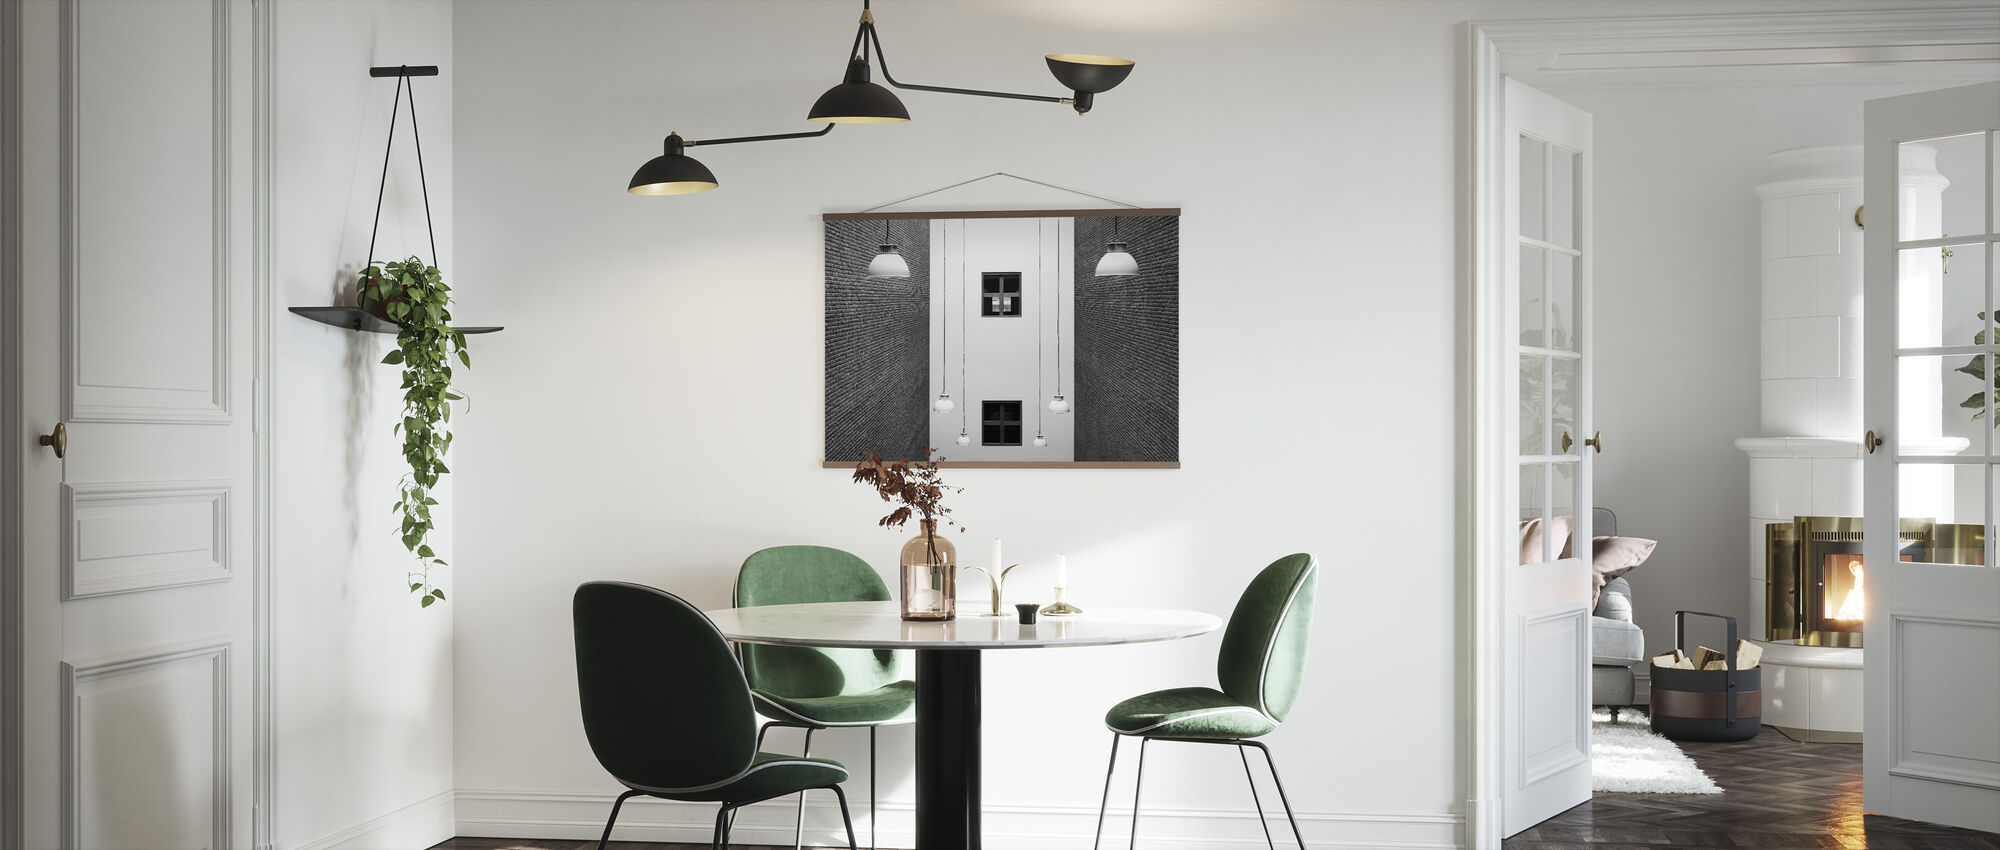 Arrangement of Lamps and Windows - Poster - Kitchen